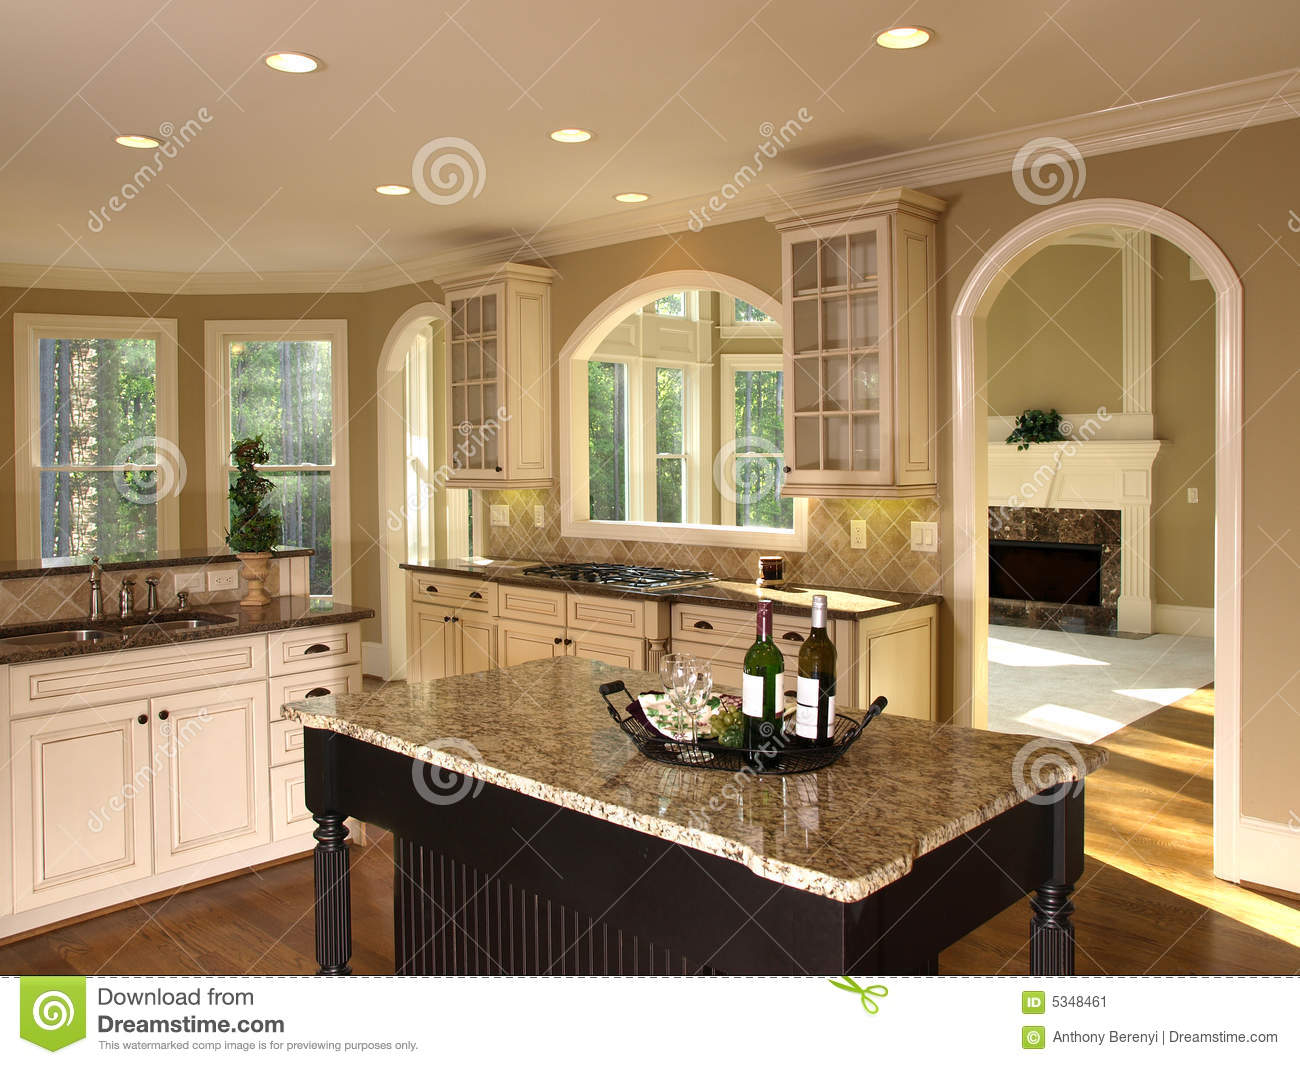 Luxury model home kitchen island stock image image 5348461 for House kitchen model